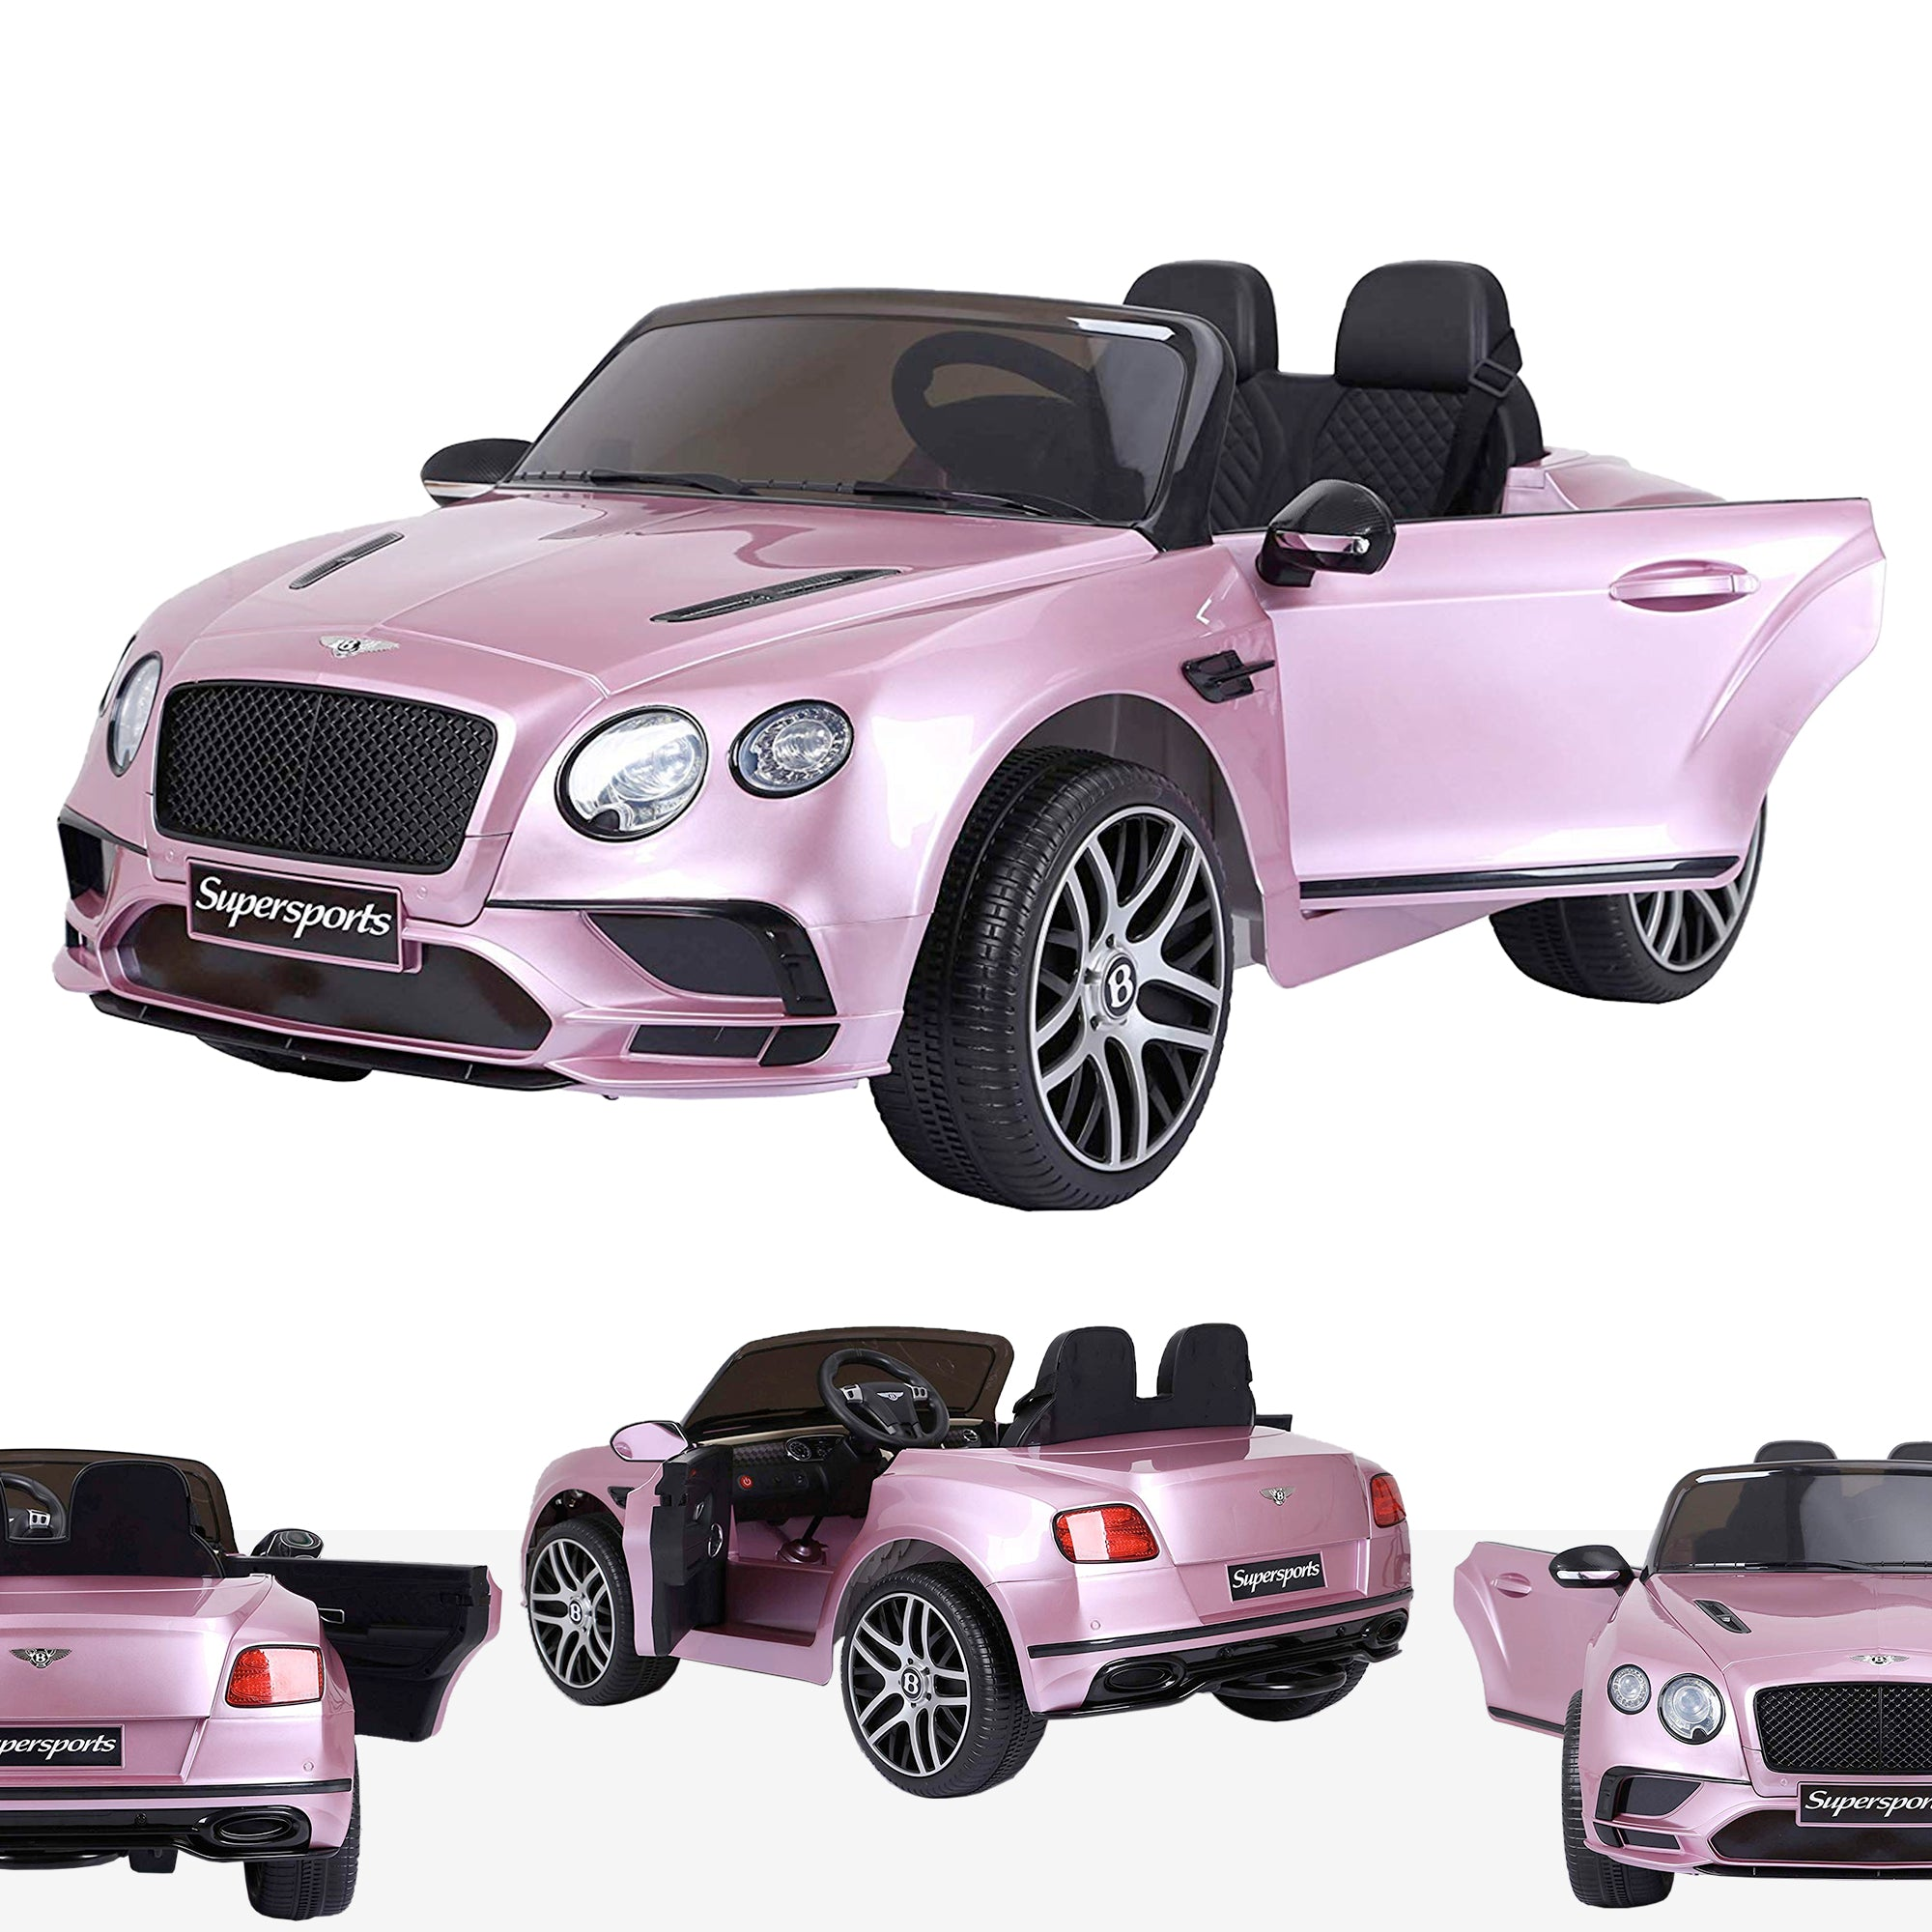 Bentley Continental Super Sports Painted Pink